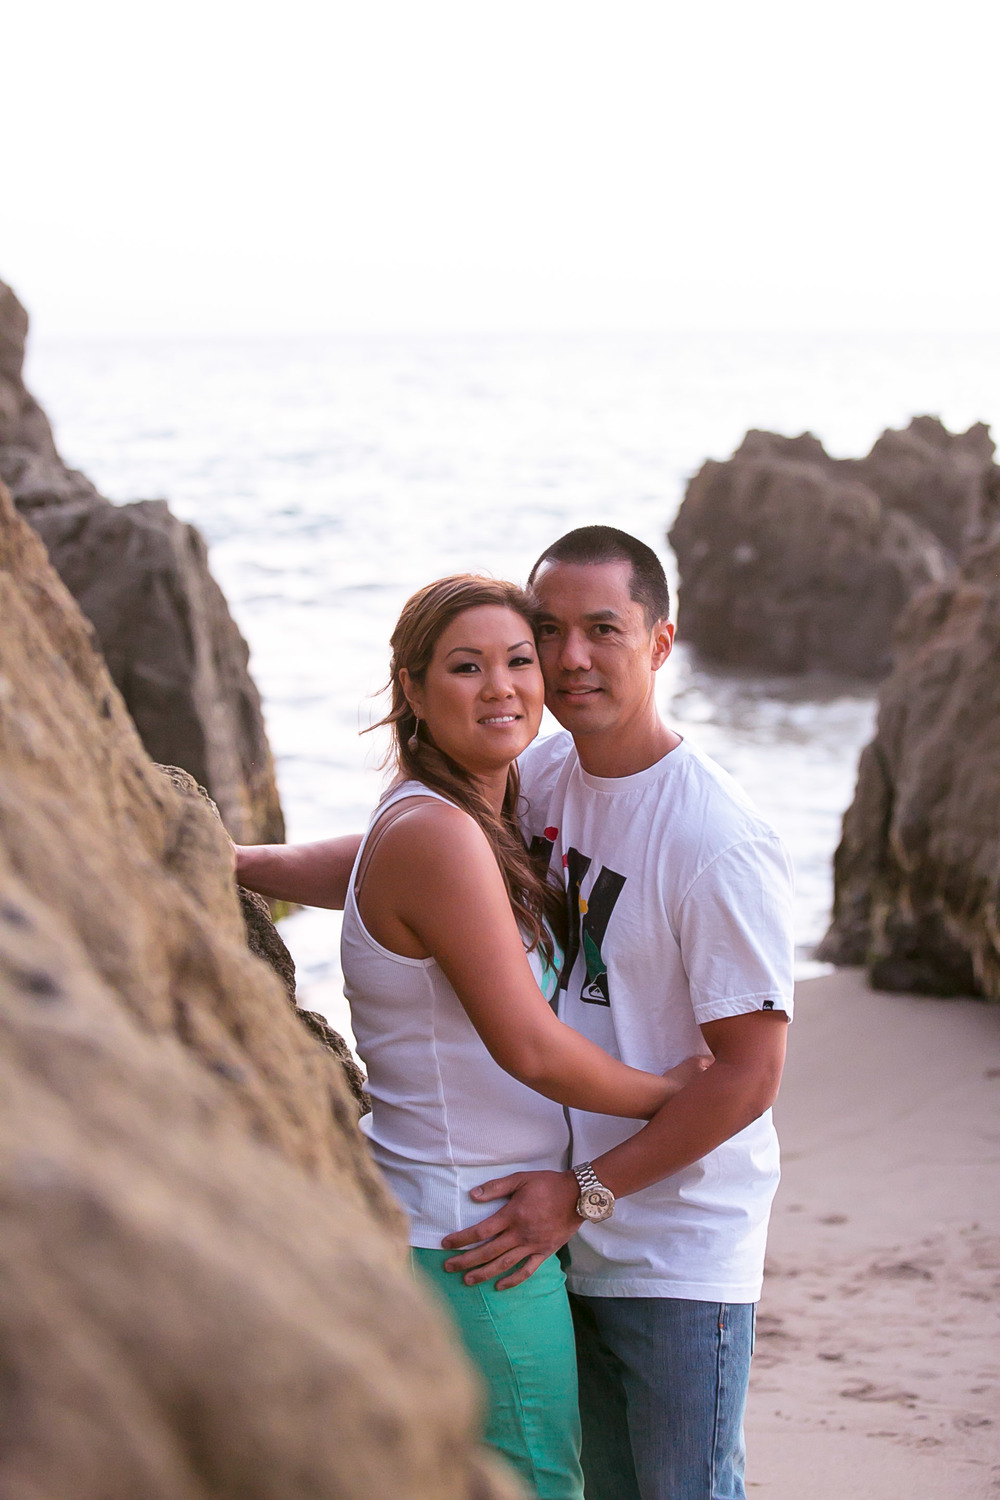 20131020_CHRIS_JEFF_MALIBU_BEACH_ENGAGEMENT_CHRIS_HOLT_PHOTOGRAPHY_012.jpg